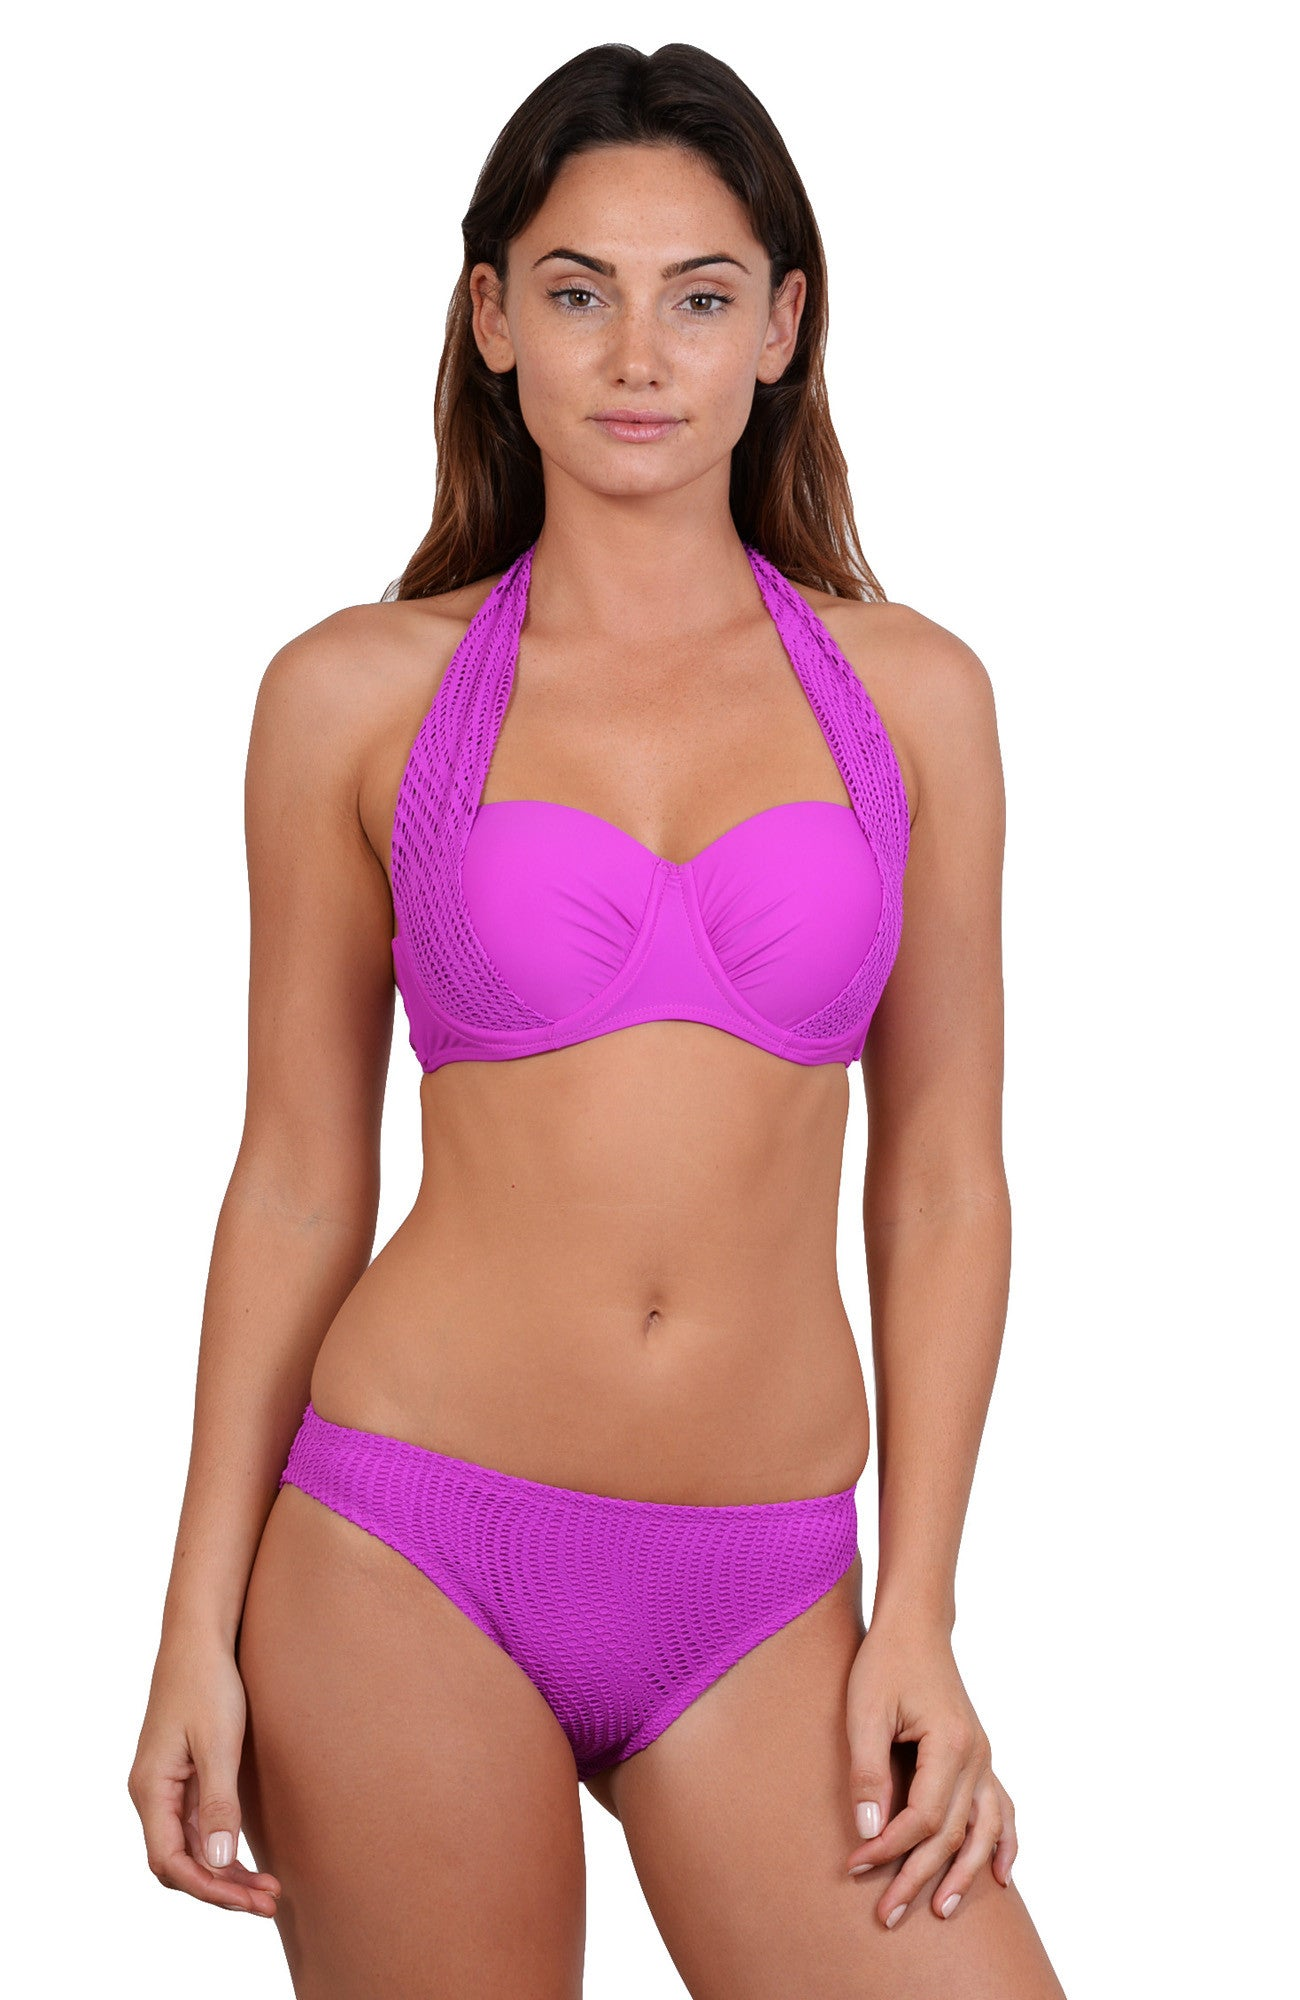 Finch Swim bikini top with clip back, underwire, fixed cups, side bone